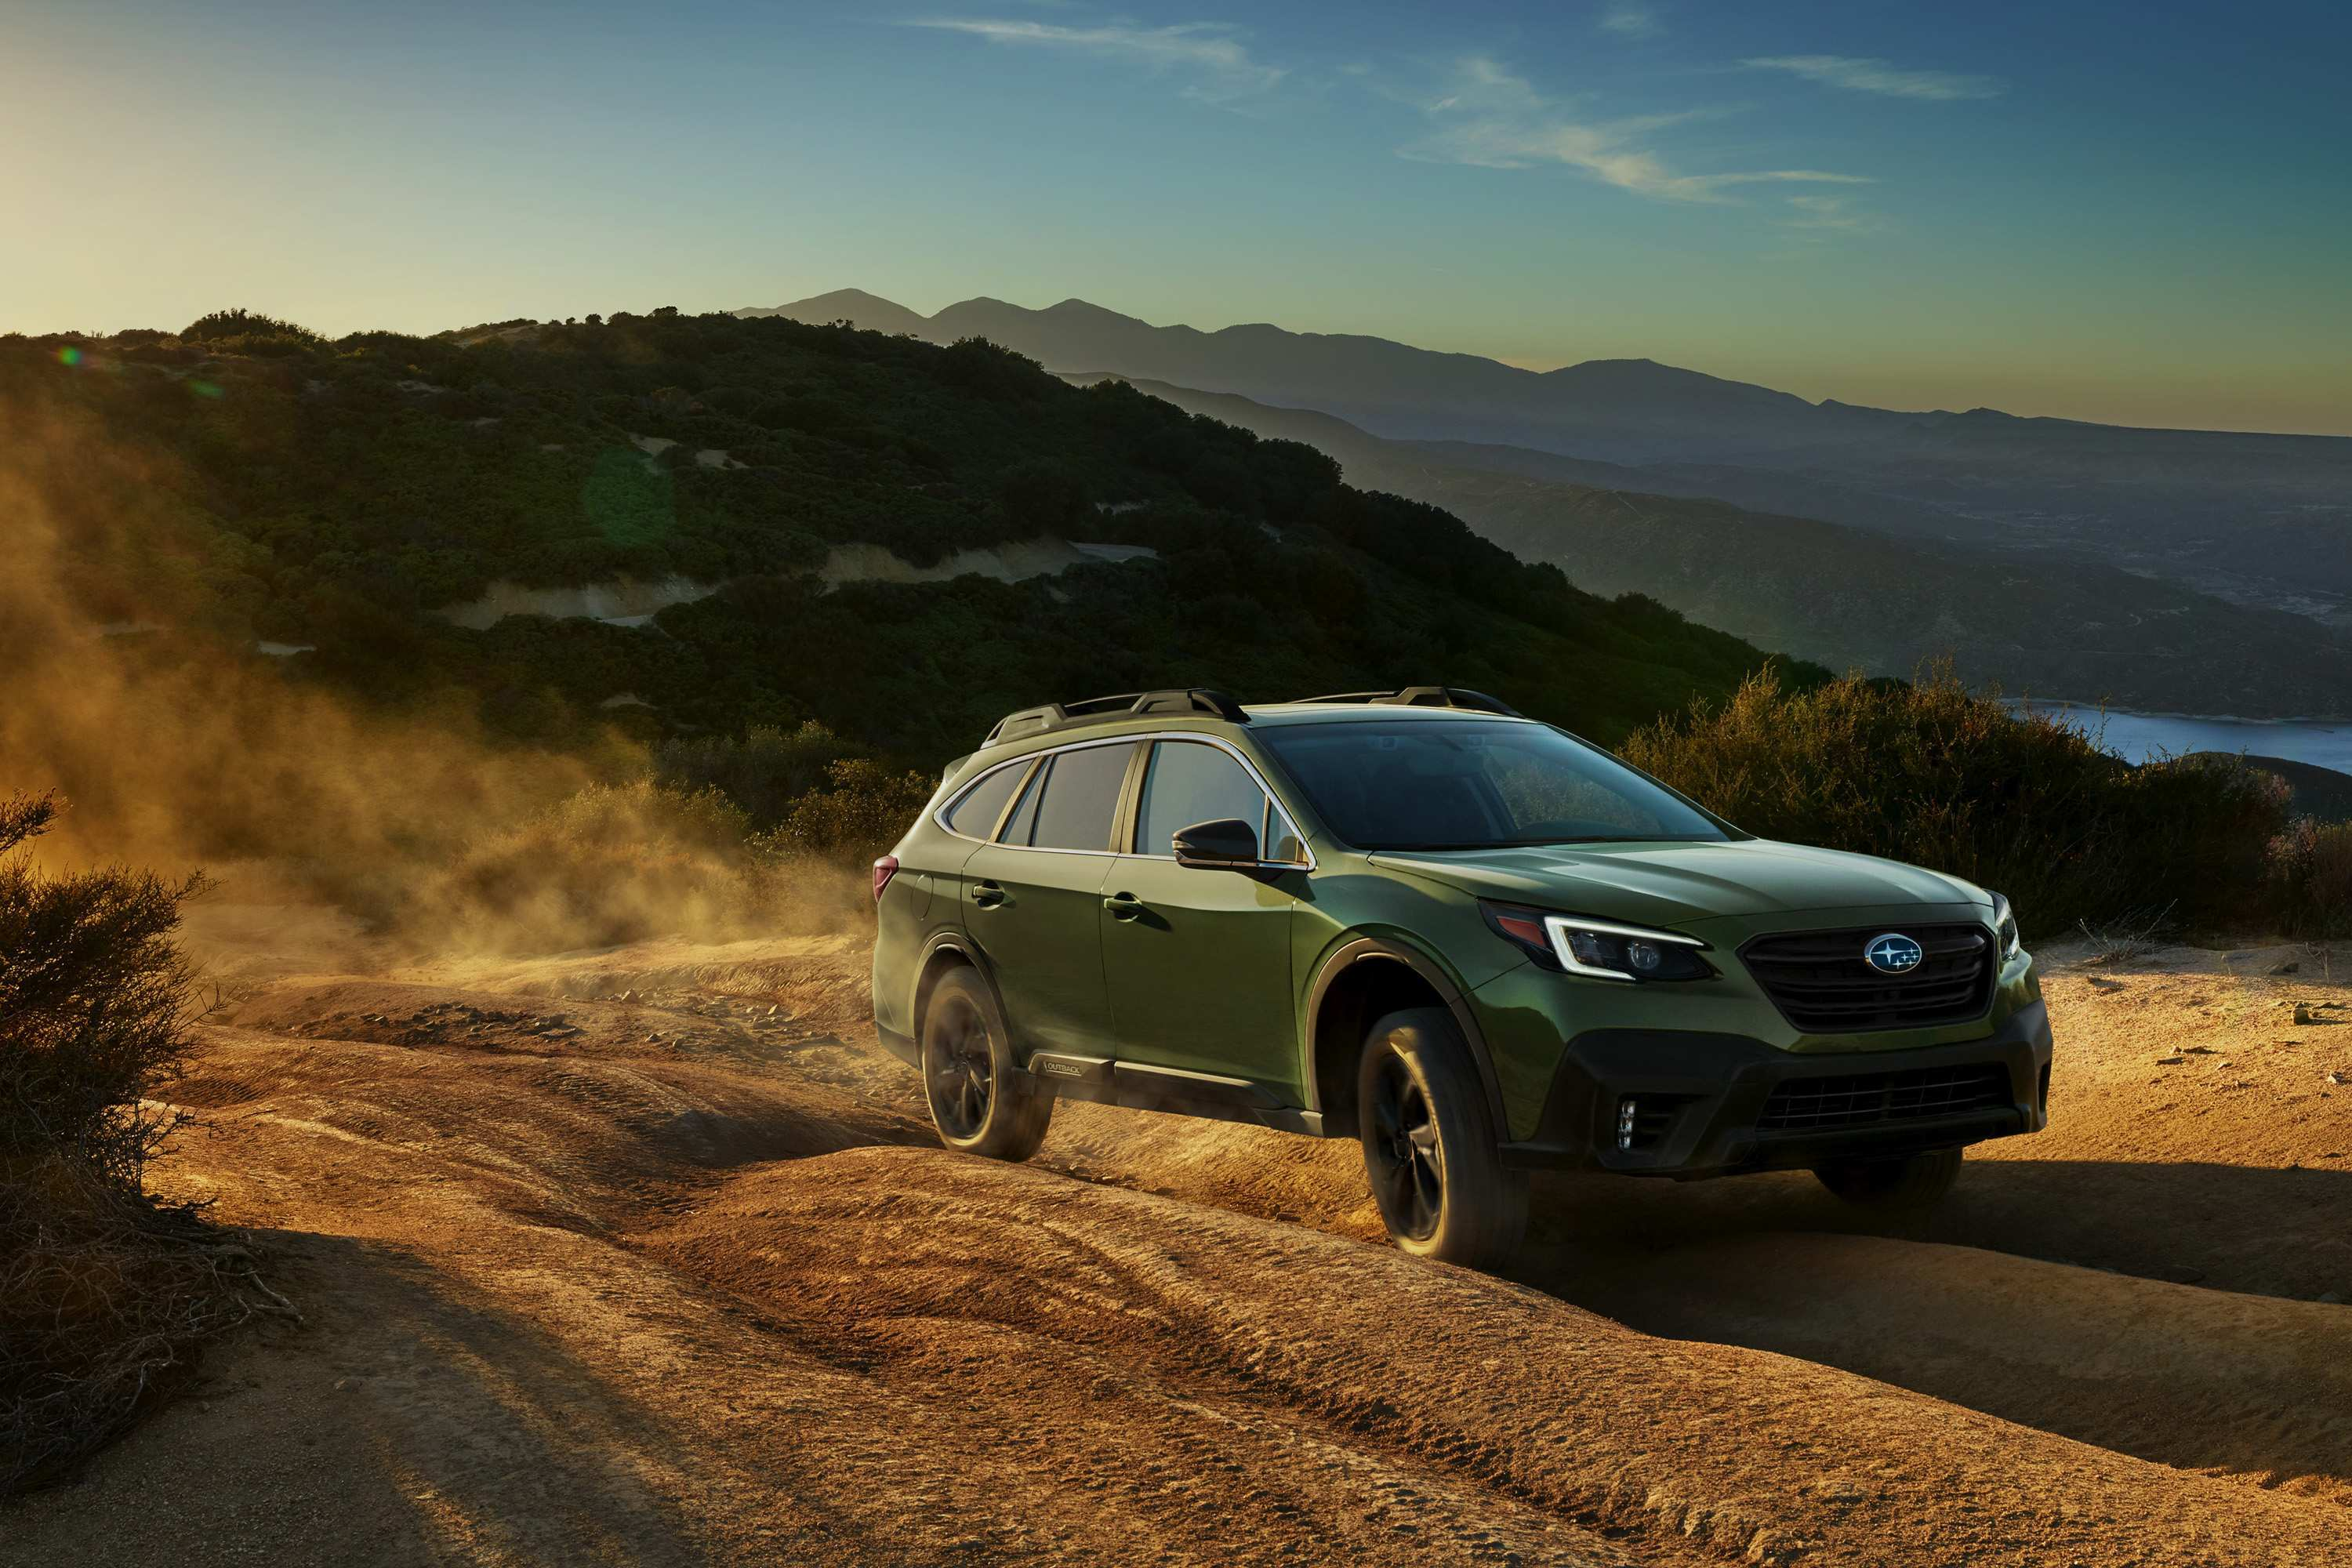 38 Gallery of When Will 2020 Subaru Outback Be Available Spy Shoot by When Will 2020 Subaru Outback Be Available